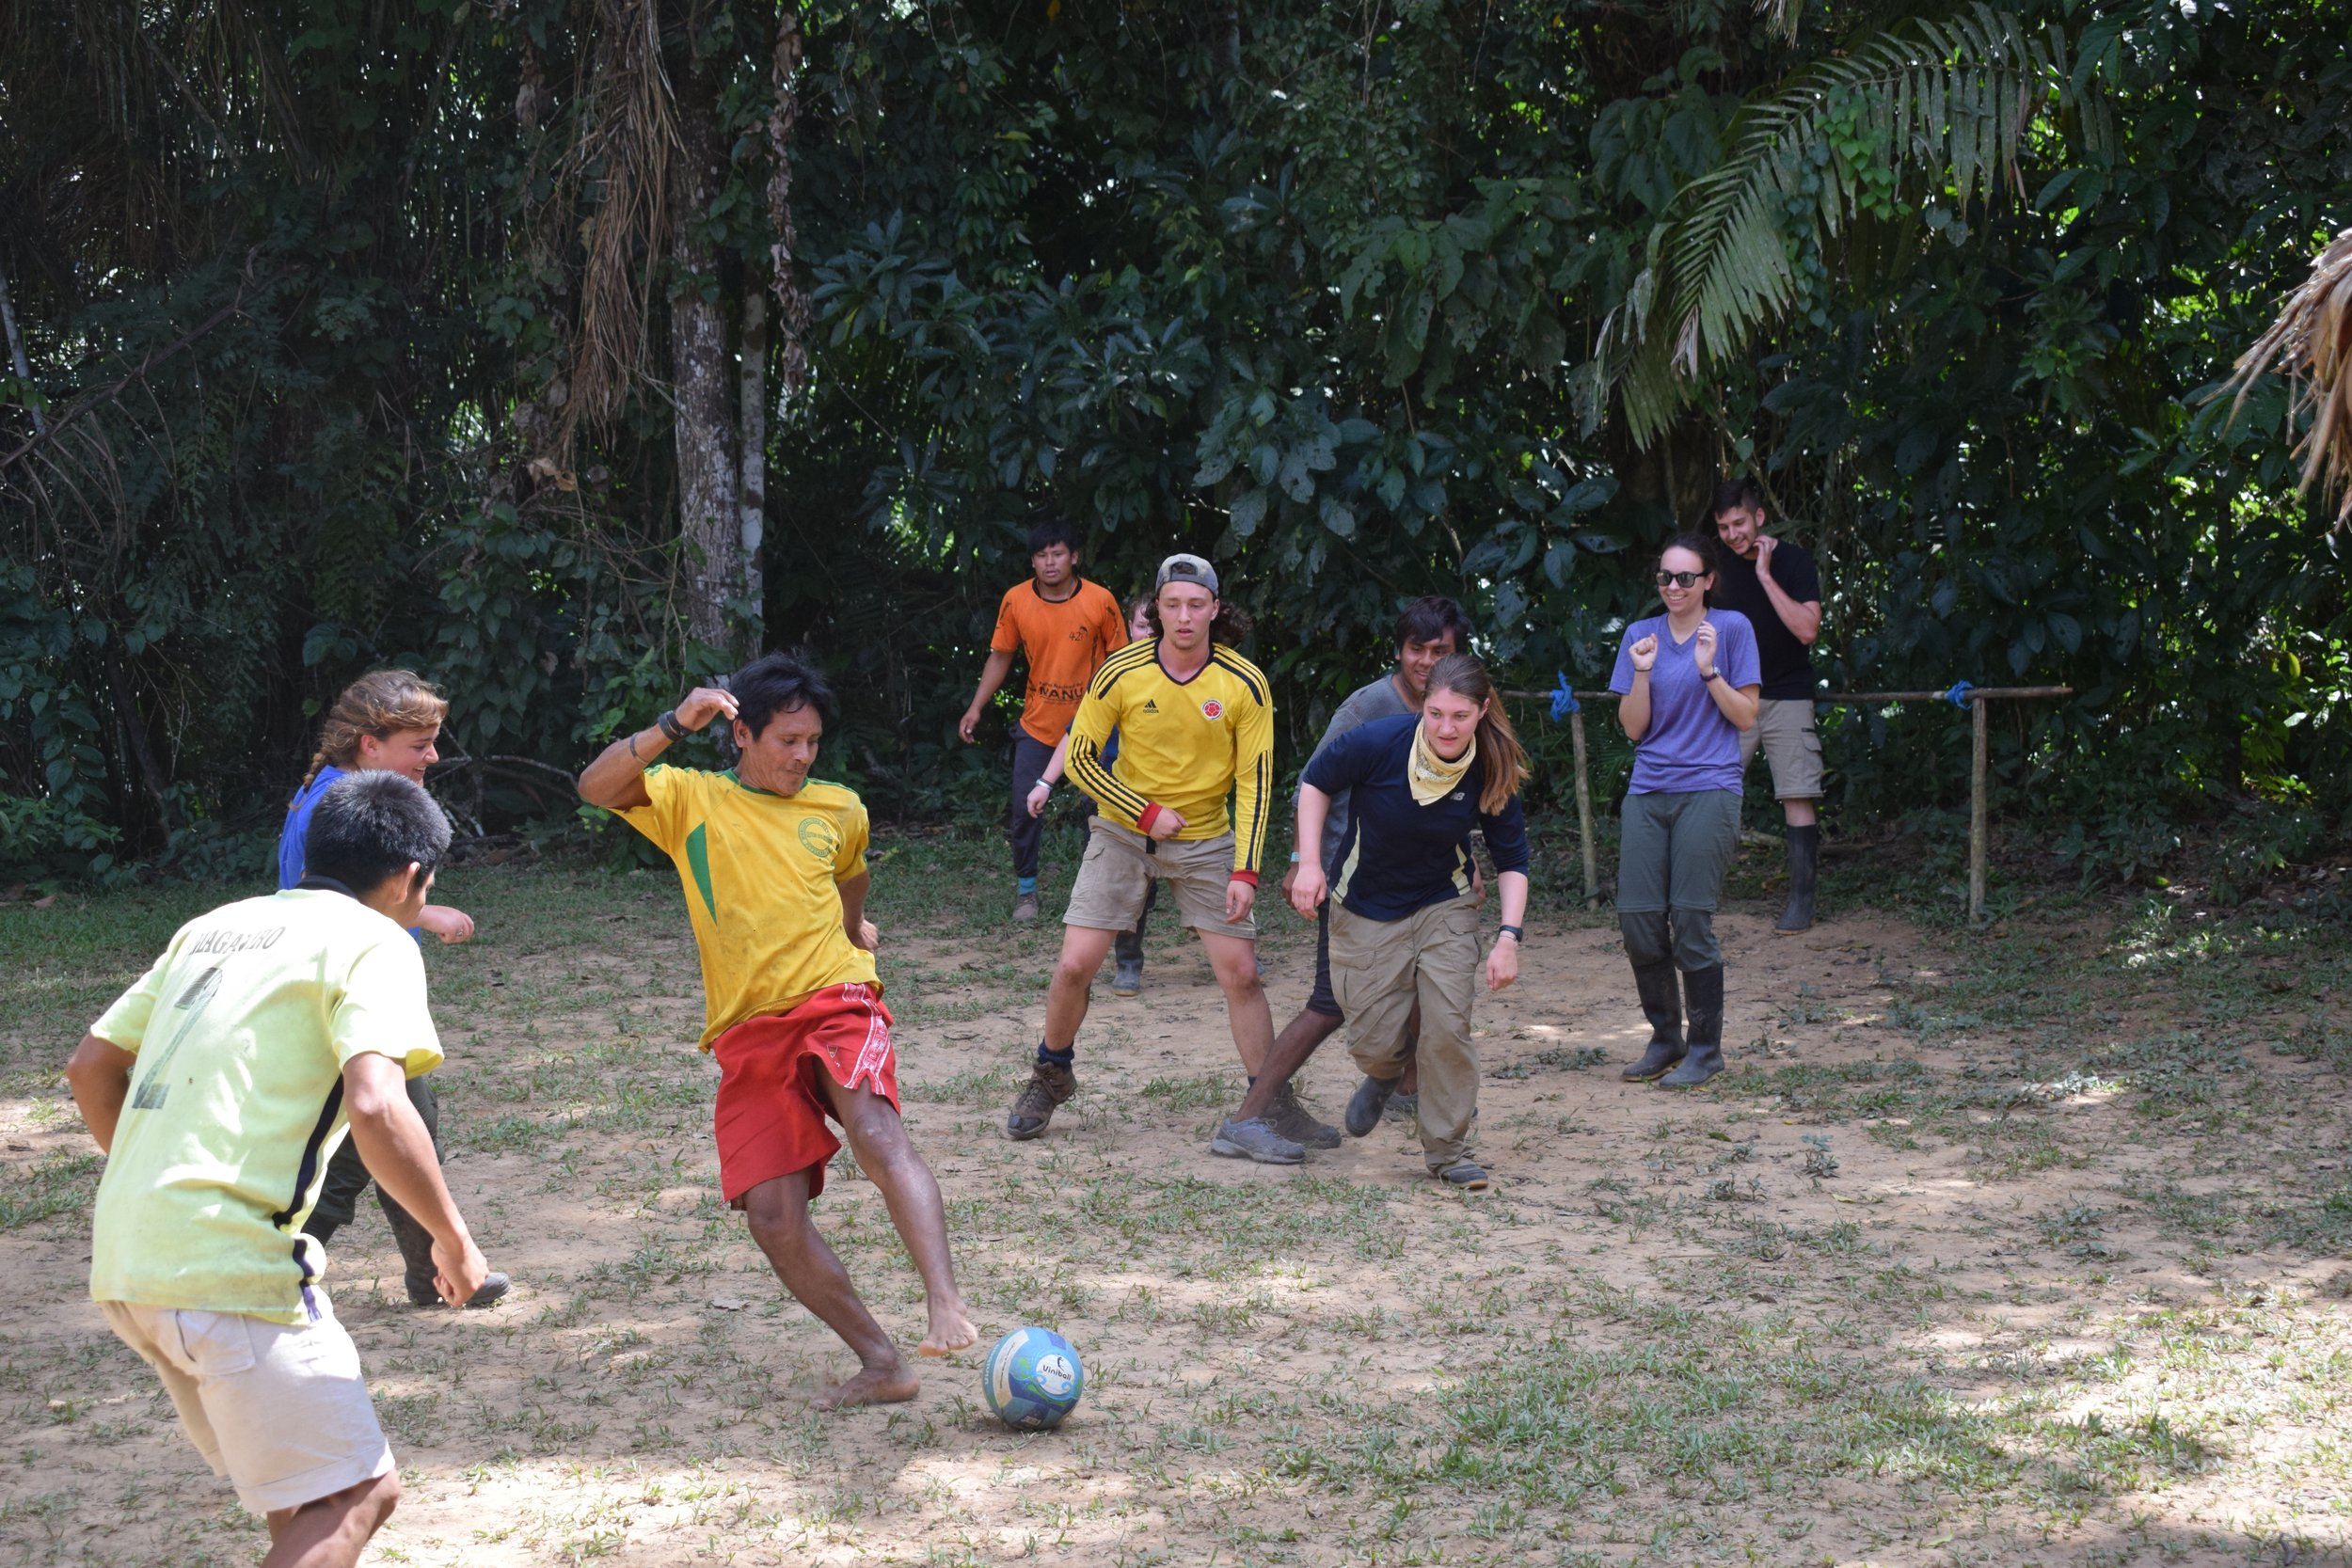 Trip participant playing soccer with some of the locals.